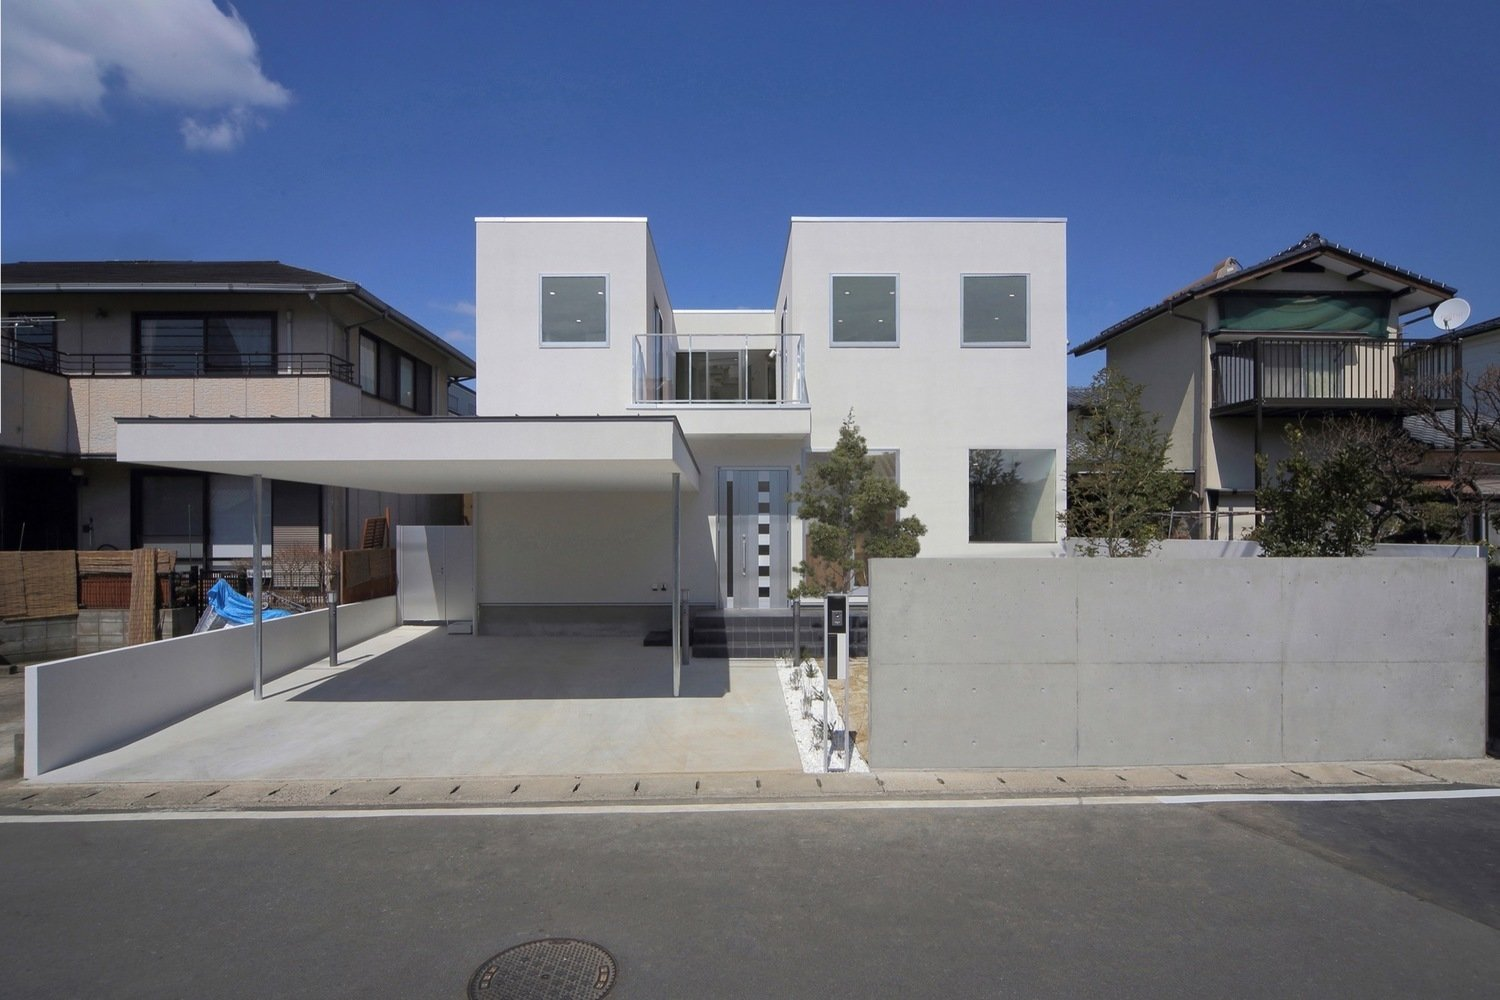 Photo 6 of 11 in 10 Bright White Cubist Homes Across the Globe from House K by YDS Architects